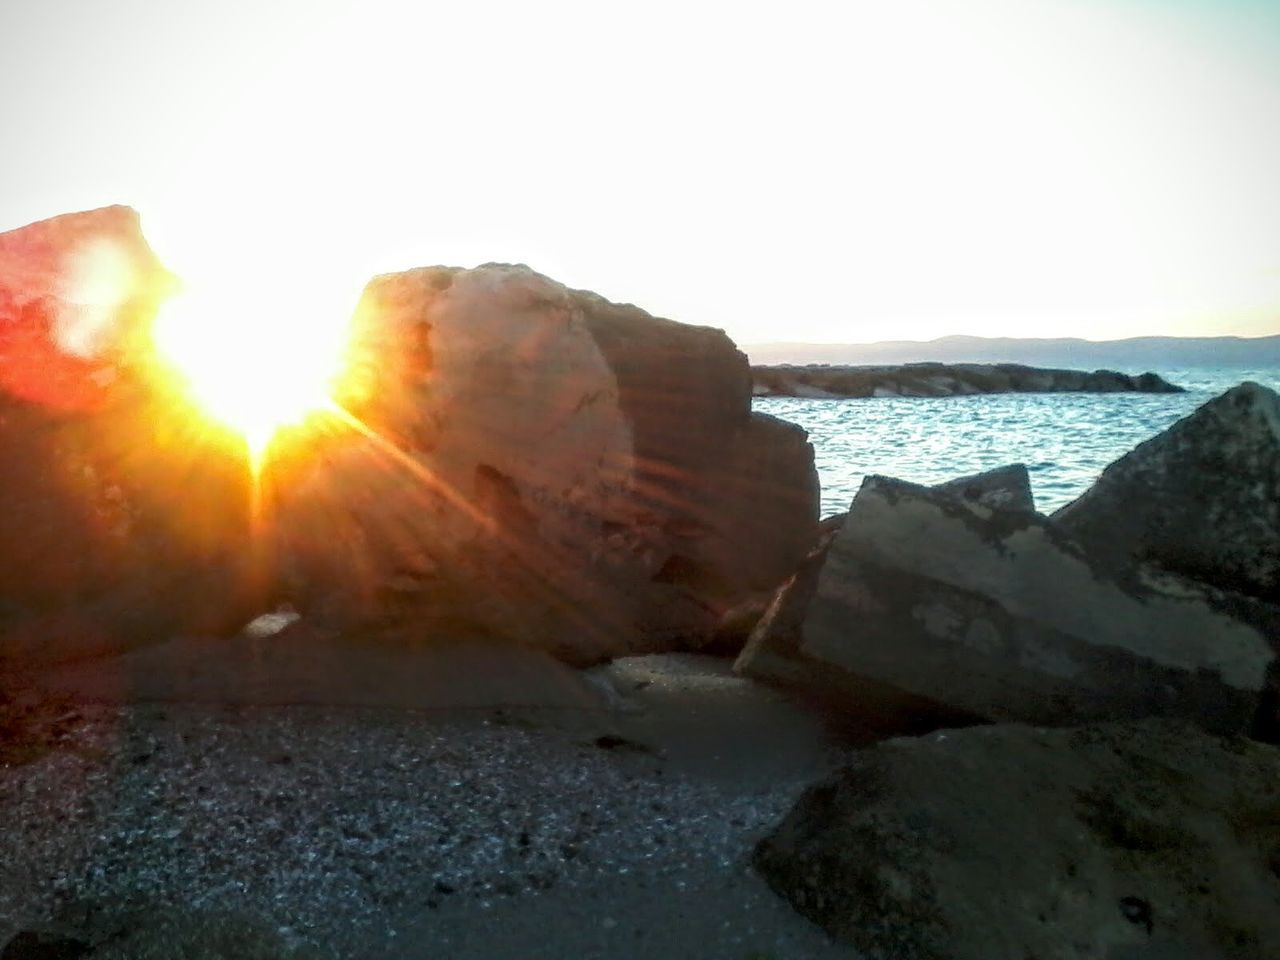 sea, nature, rock - object, no people, beach, sunlight, scenics, outdoors, sky, horizon over water, sunset, day, water, beauty in nature, close-up